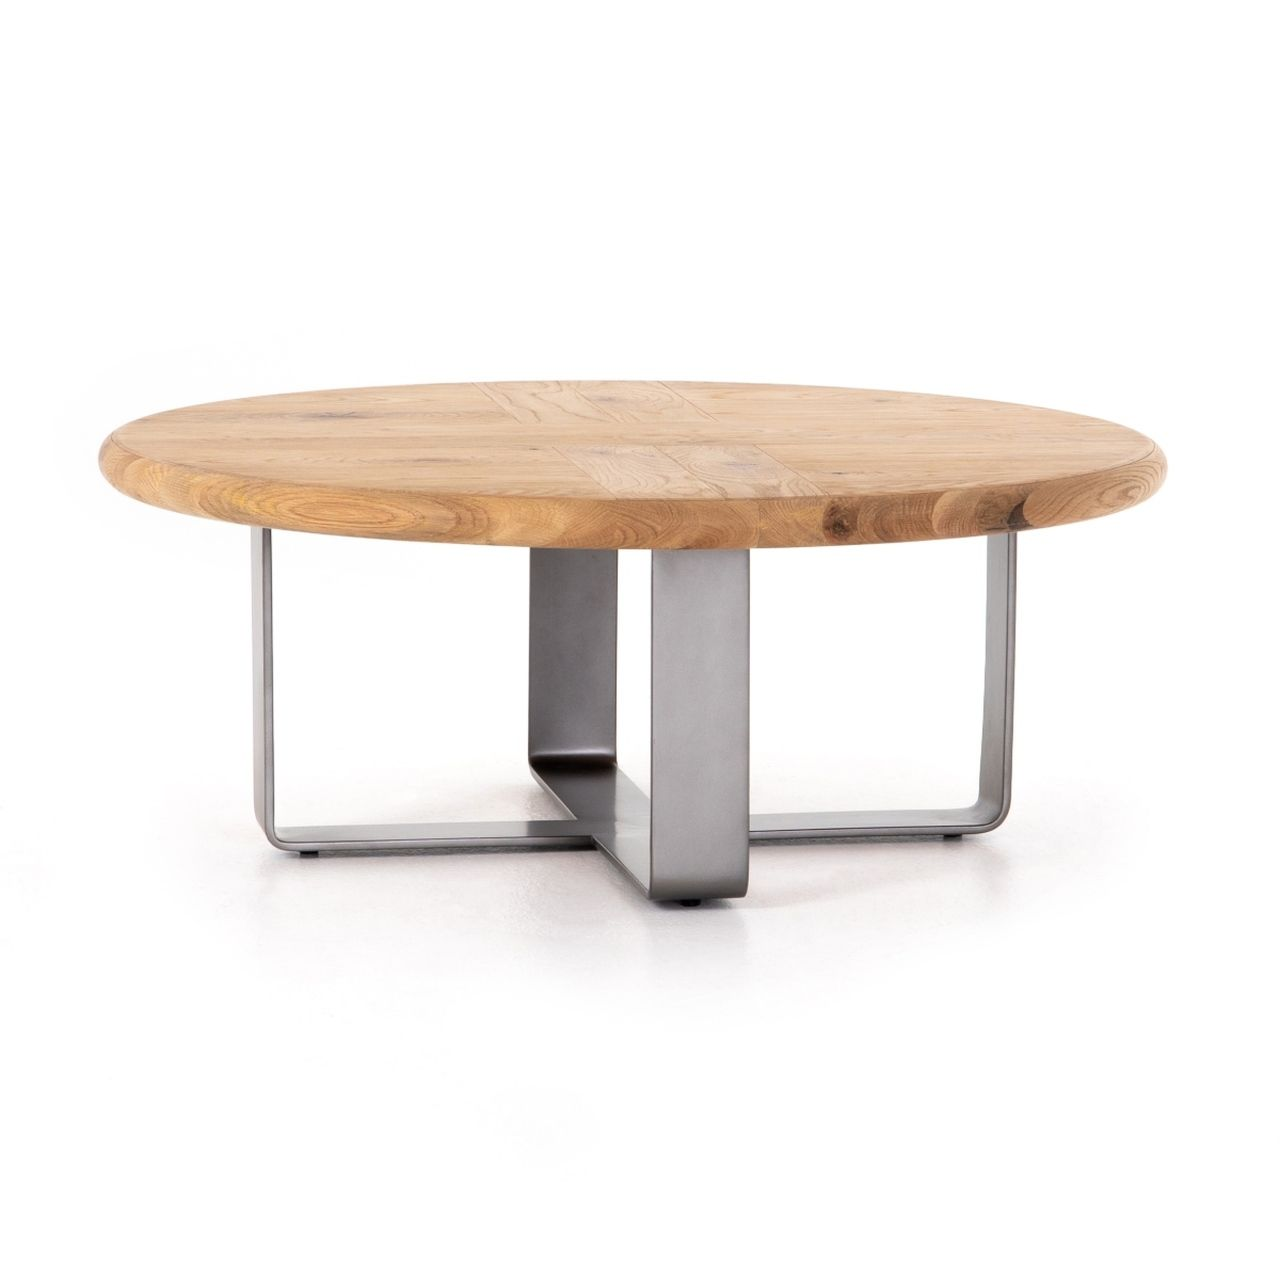 Skate Oak Wood Metal Round Coffee Table 42 Round Metal Coffee